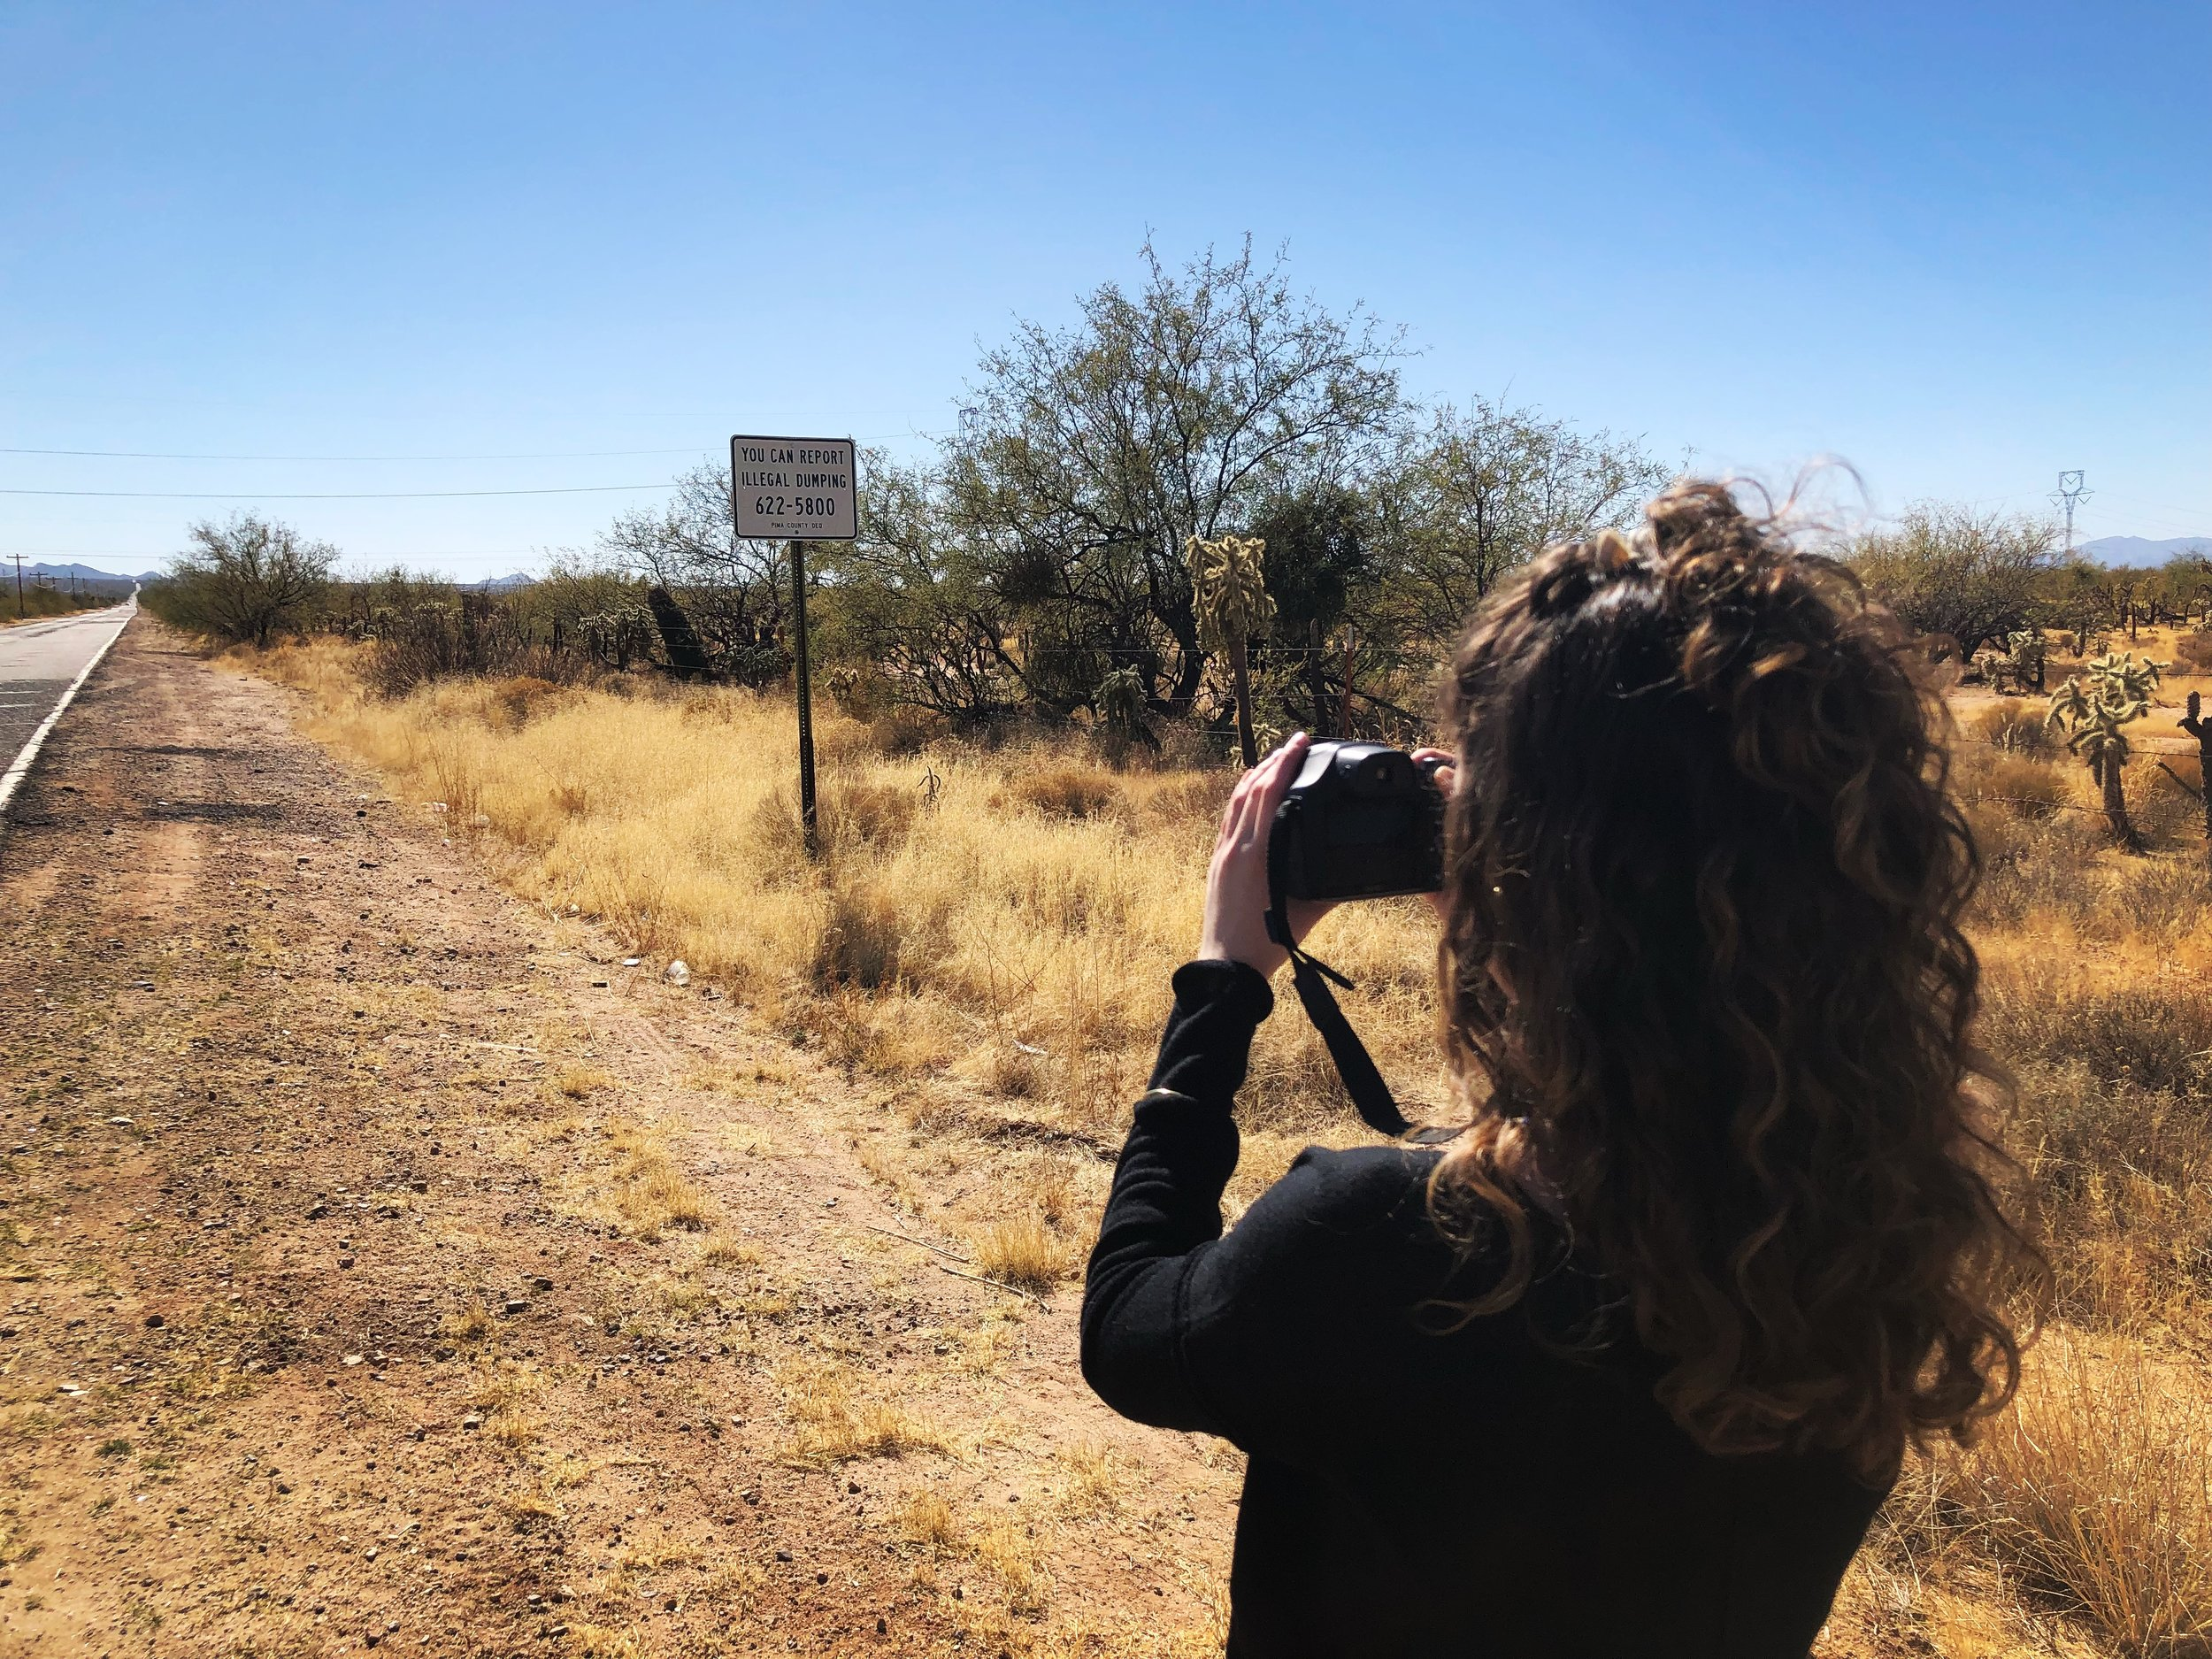 Somewhere between Tucson and the U.S.-Mexico border on assignment for Cronkite News. (Photo by Lillian Donahue)